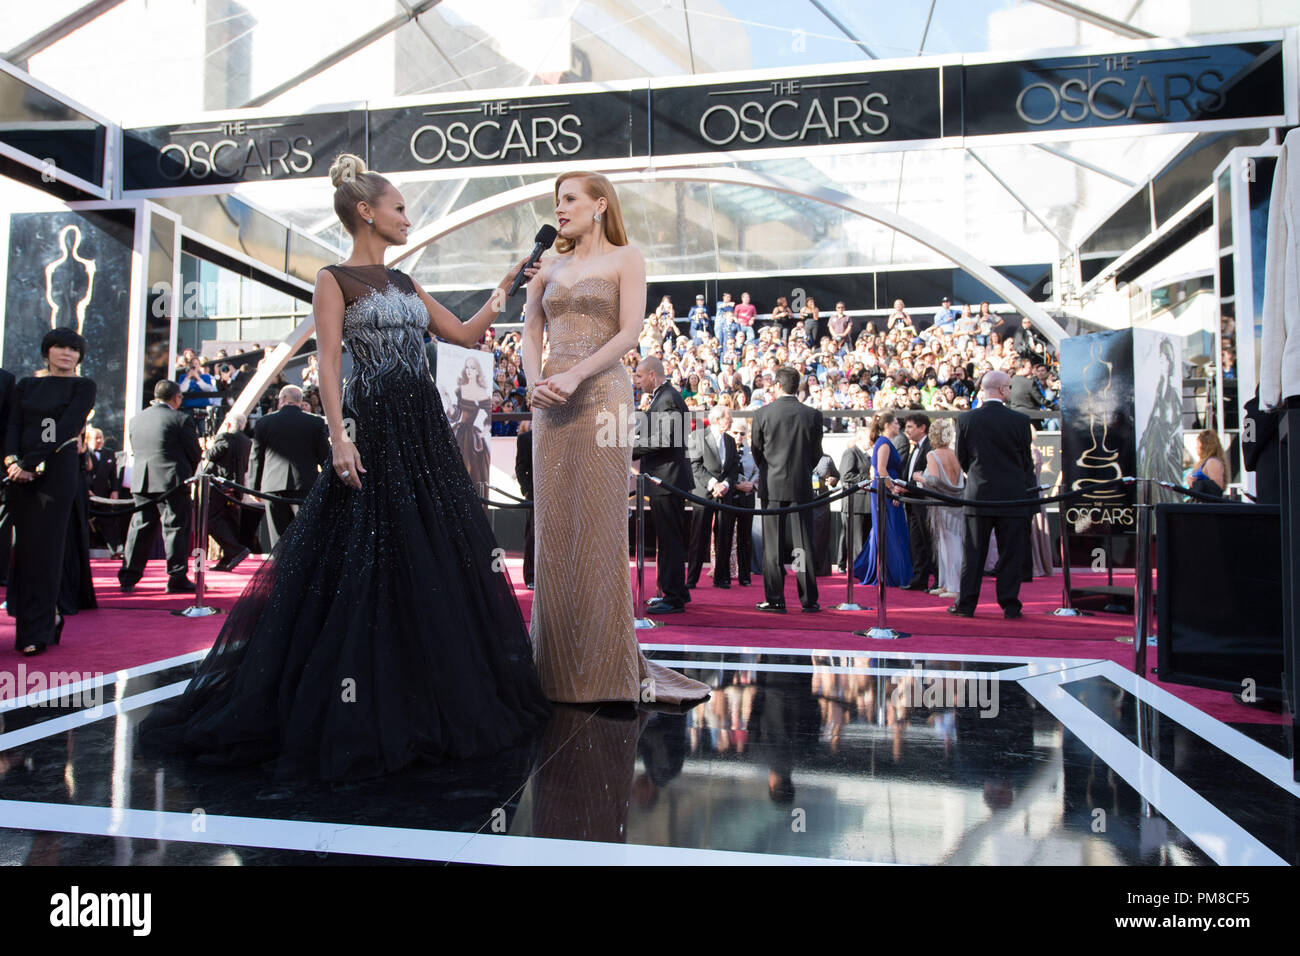 Kristin Chenoweth (L) interviews Jessica Chastain, Oscar®-nominee for Actress in a Leading Role, before The Oscars® at the Dolby® Theatre in Hollywood, CA February 24, 2013. - Stock Image